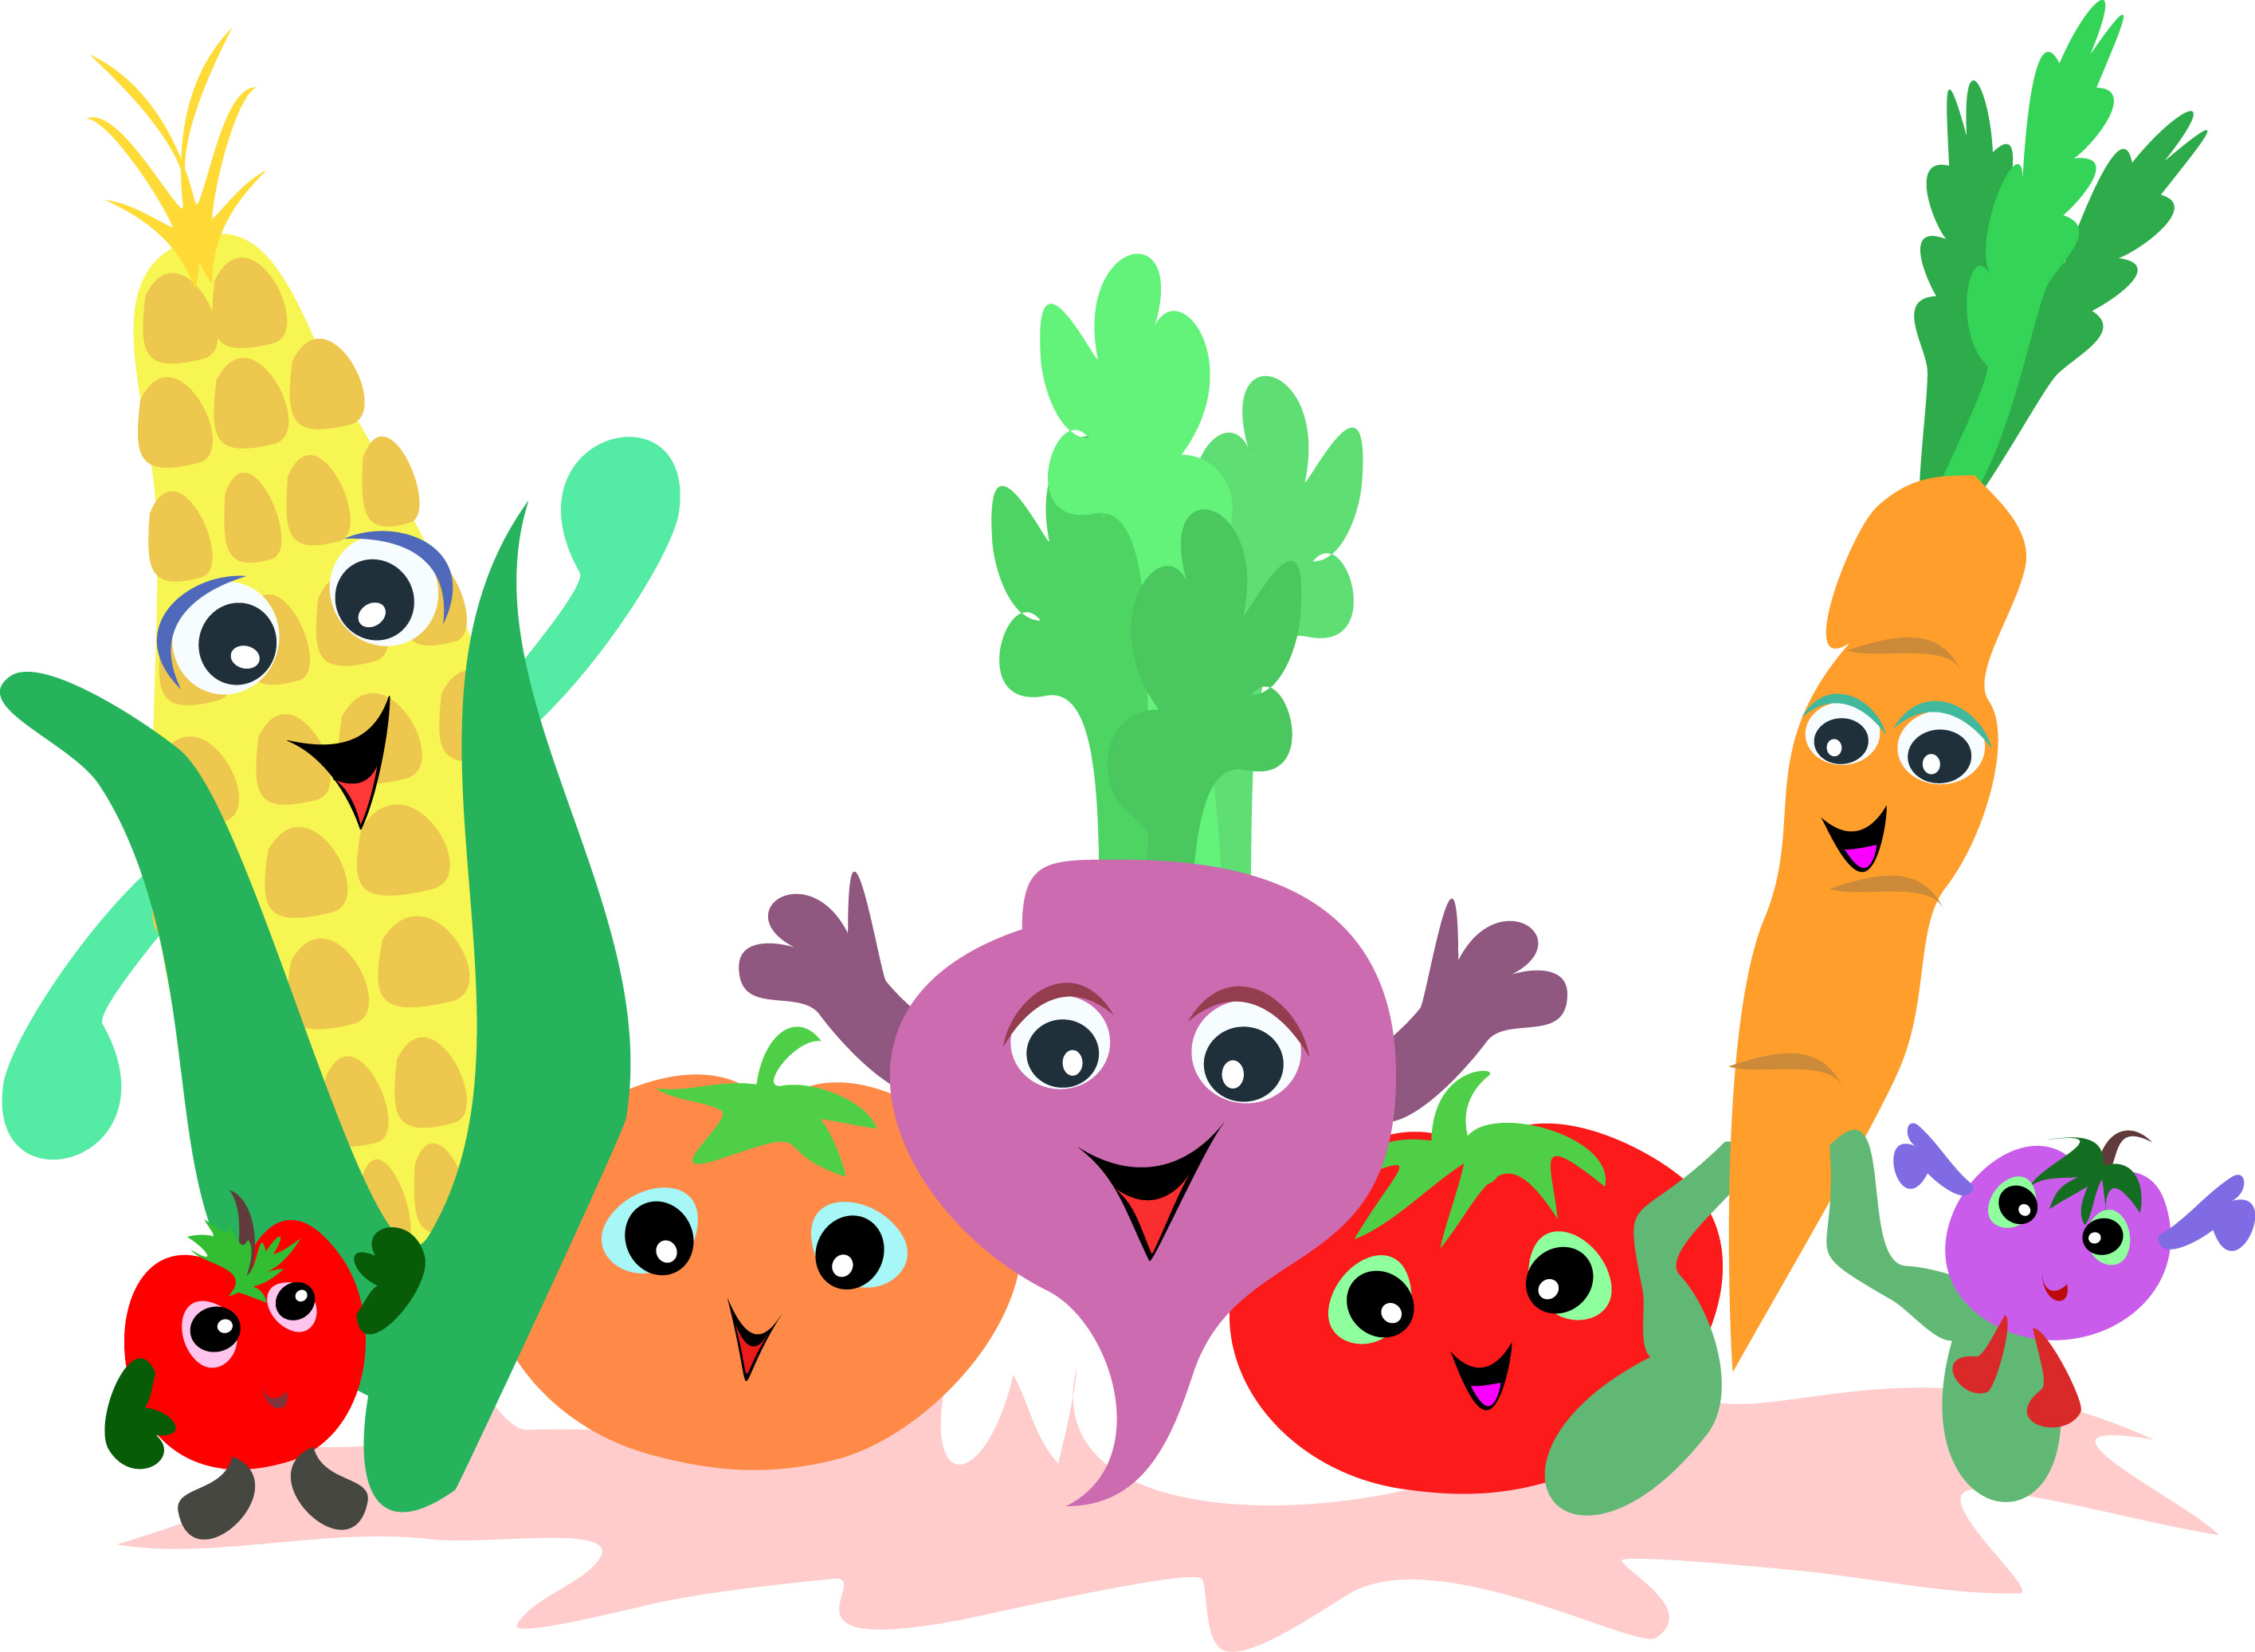 Vegetable clipart #10, Download drawings